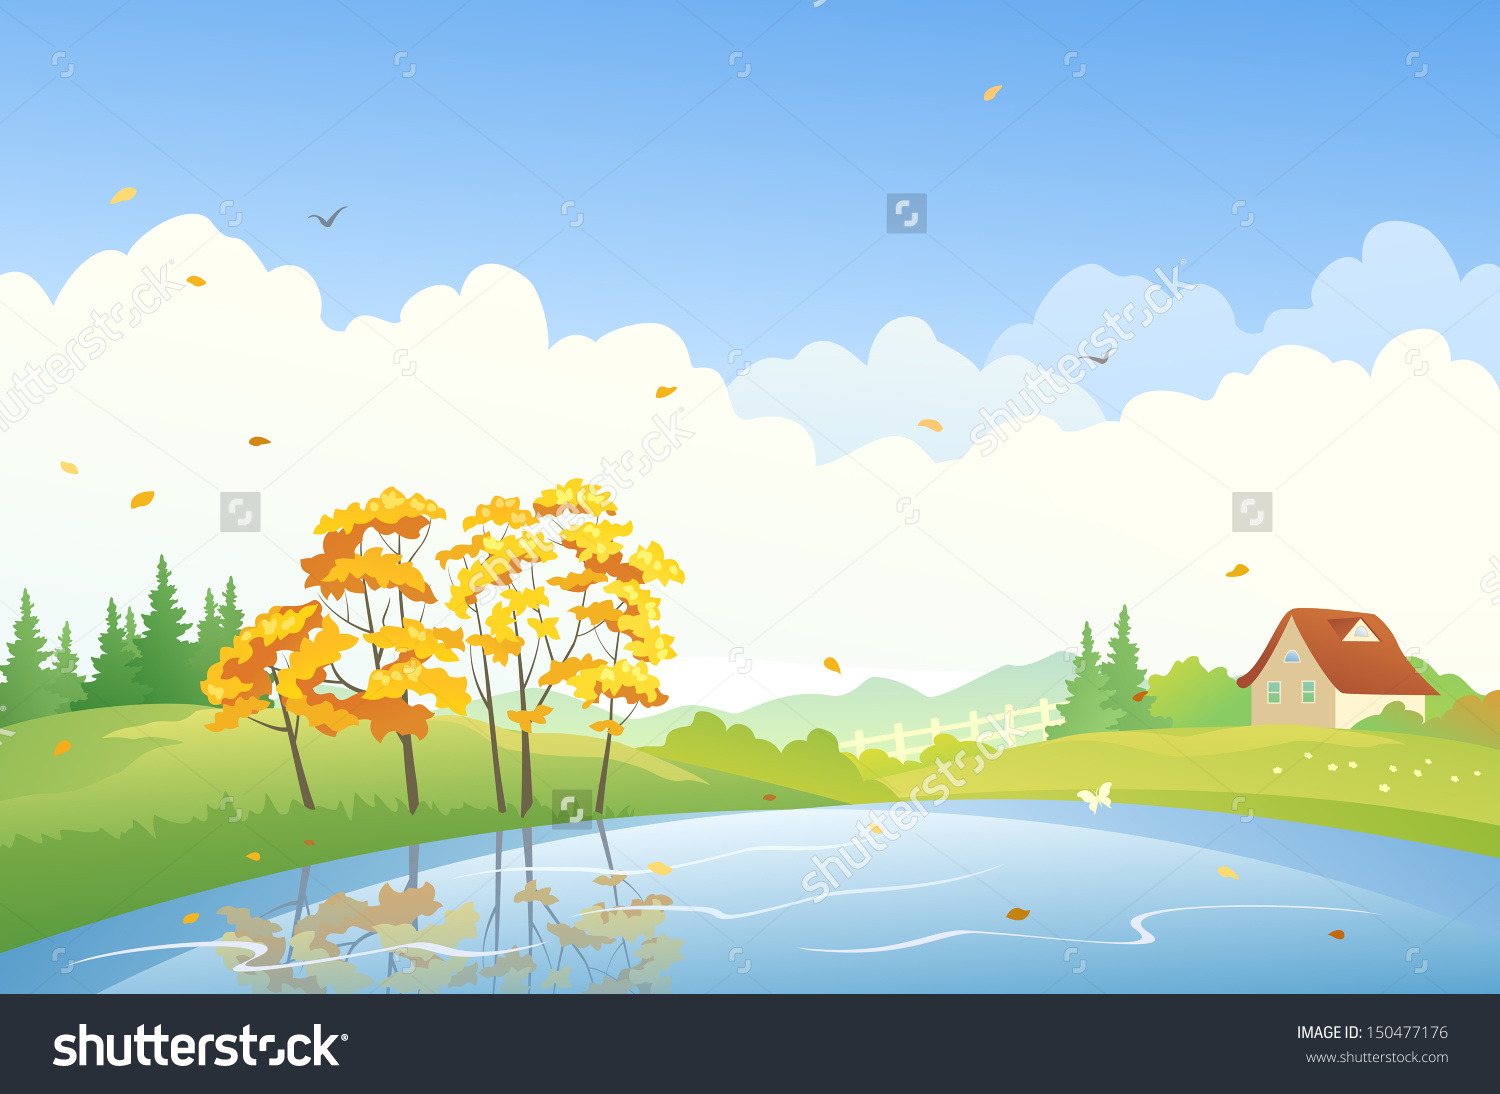 Scenic clipart natural scenery #5